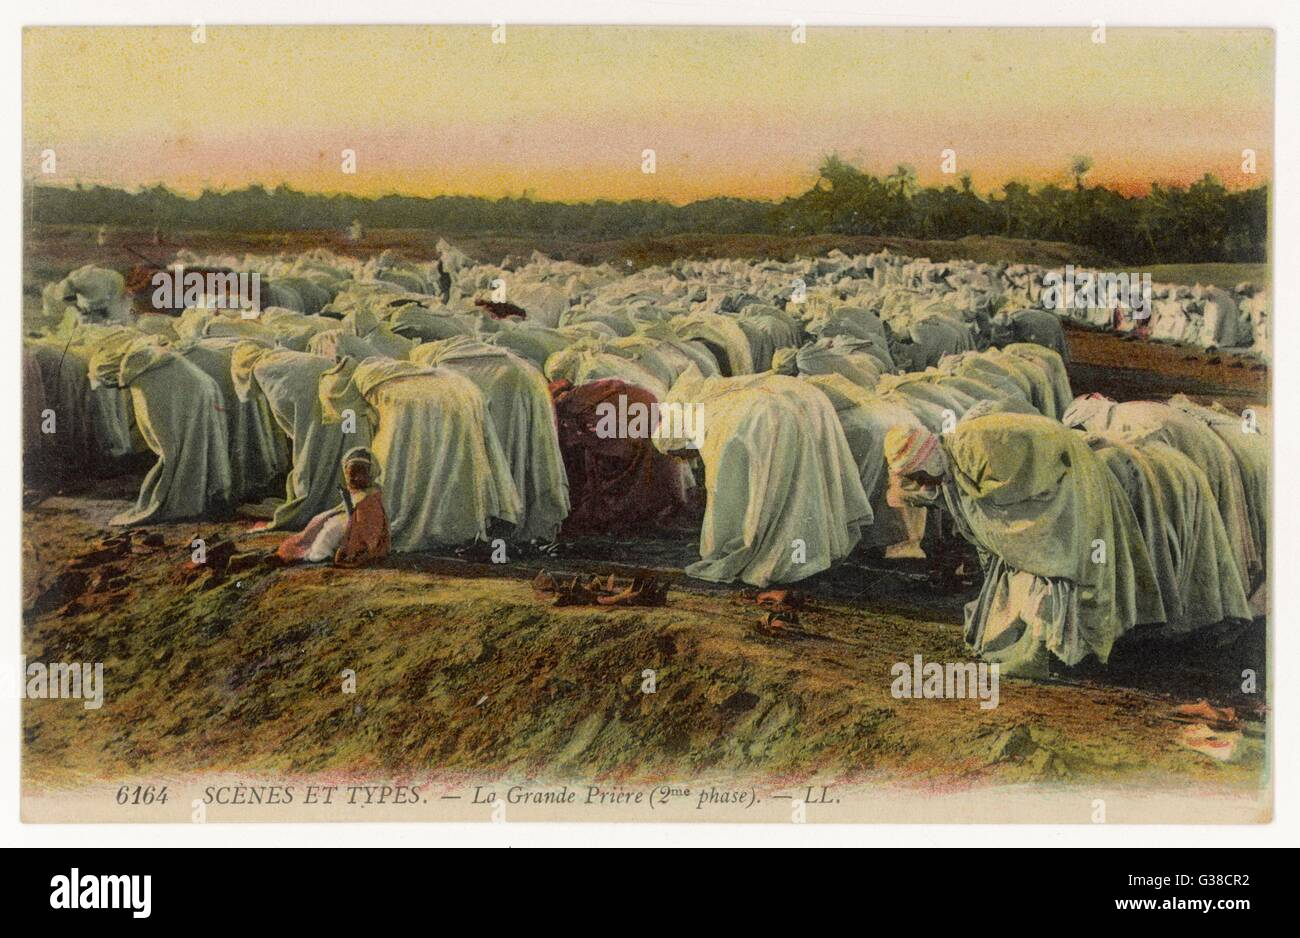 Algerian Moslems participate  in the Great Prayer         Date: circa 1905 - Stock Image